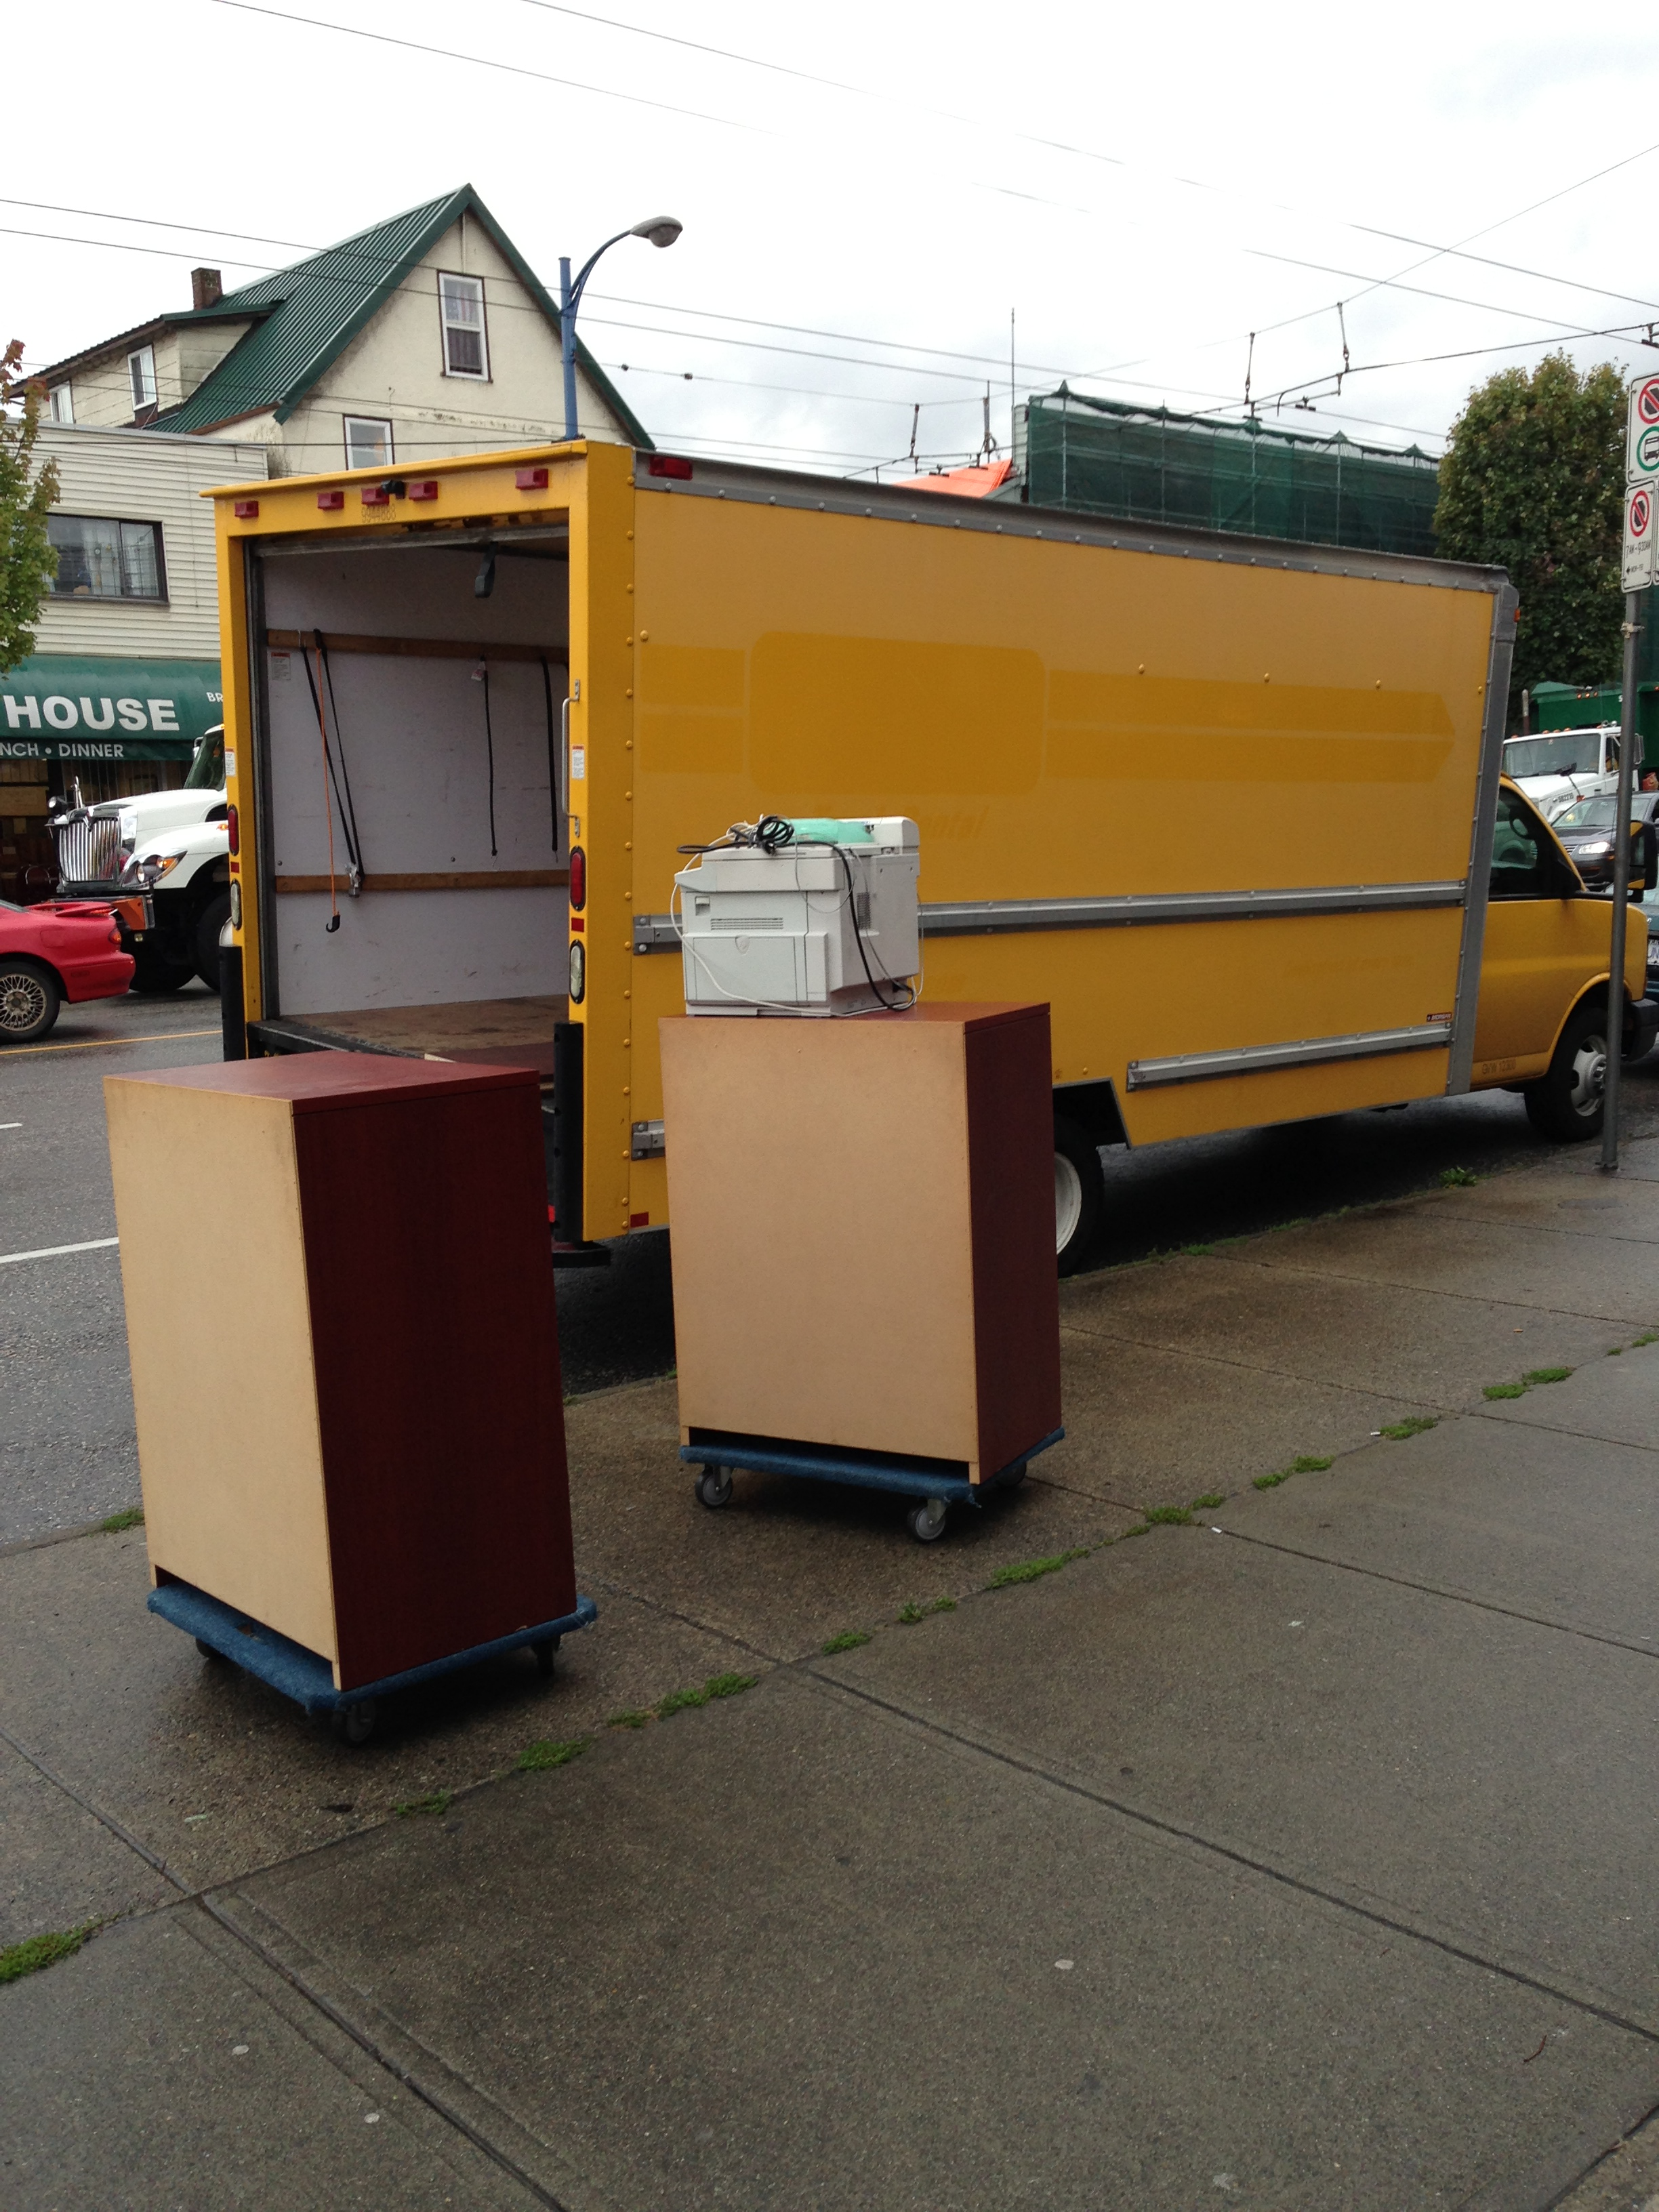 Old Furniture Disposal Vancouver Sam 39 S Junk Removal Ltd Vancouver Rubbish Removal